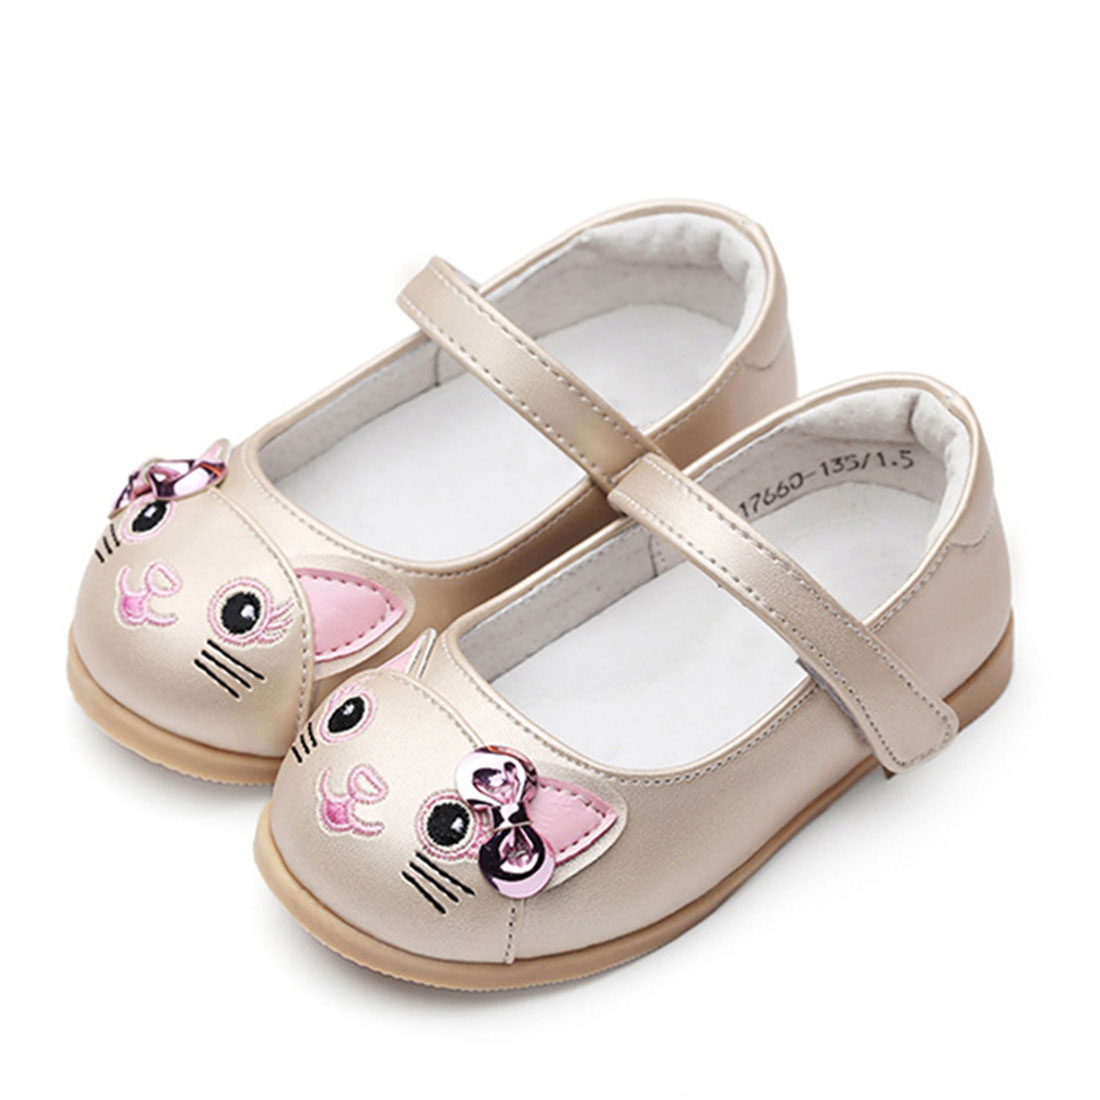 Leather bone beige flat casual lovely style little cat decoration kids pump shoe